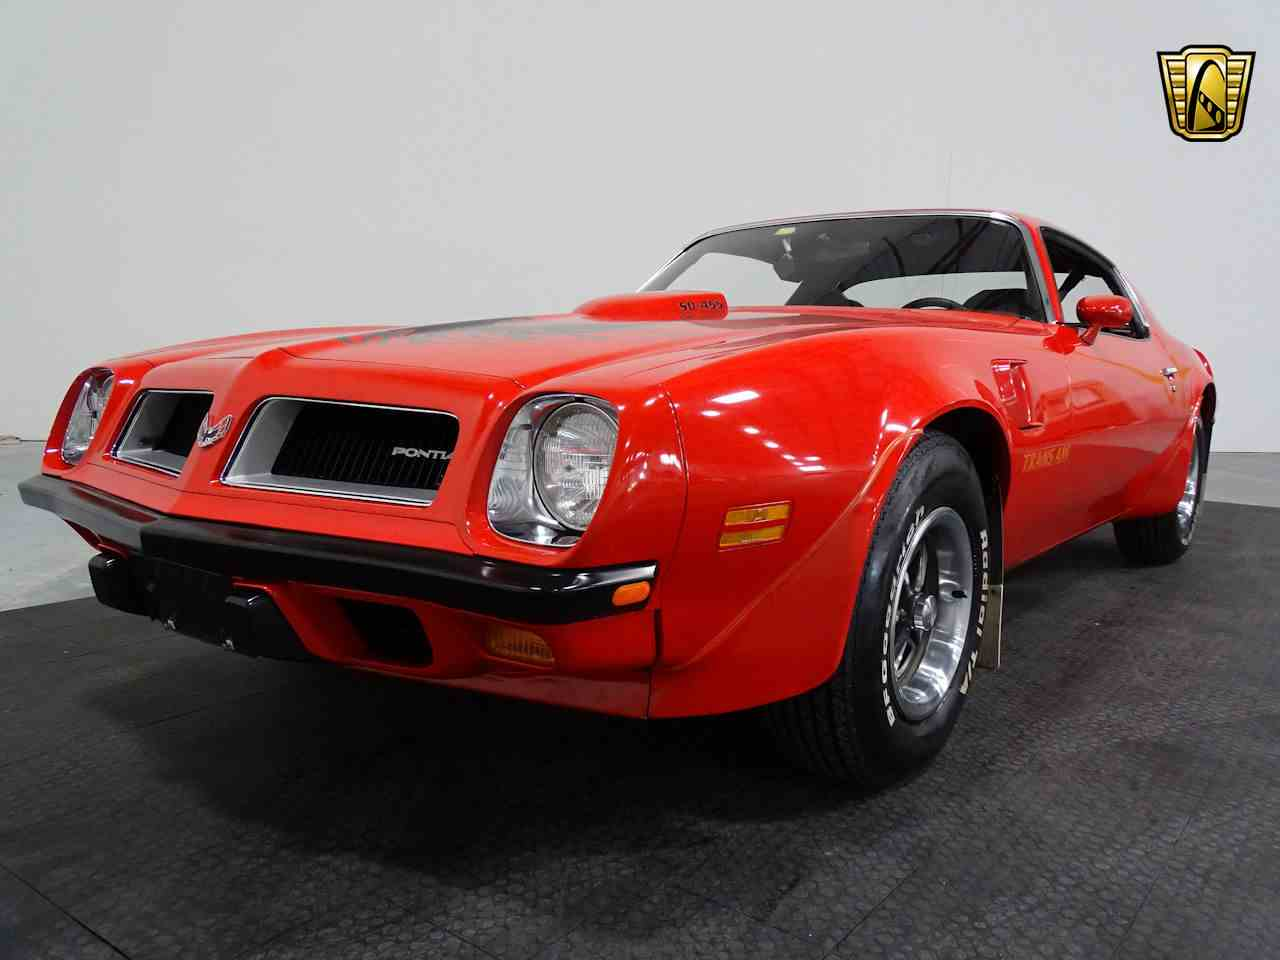 Large Picture of 1974 Pontiac Firebird Trans Am located in Houston Texas - $67,000.00 - M426